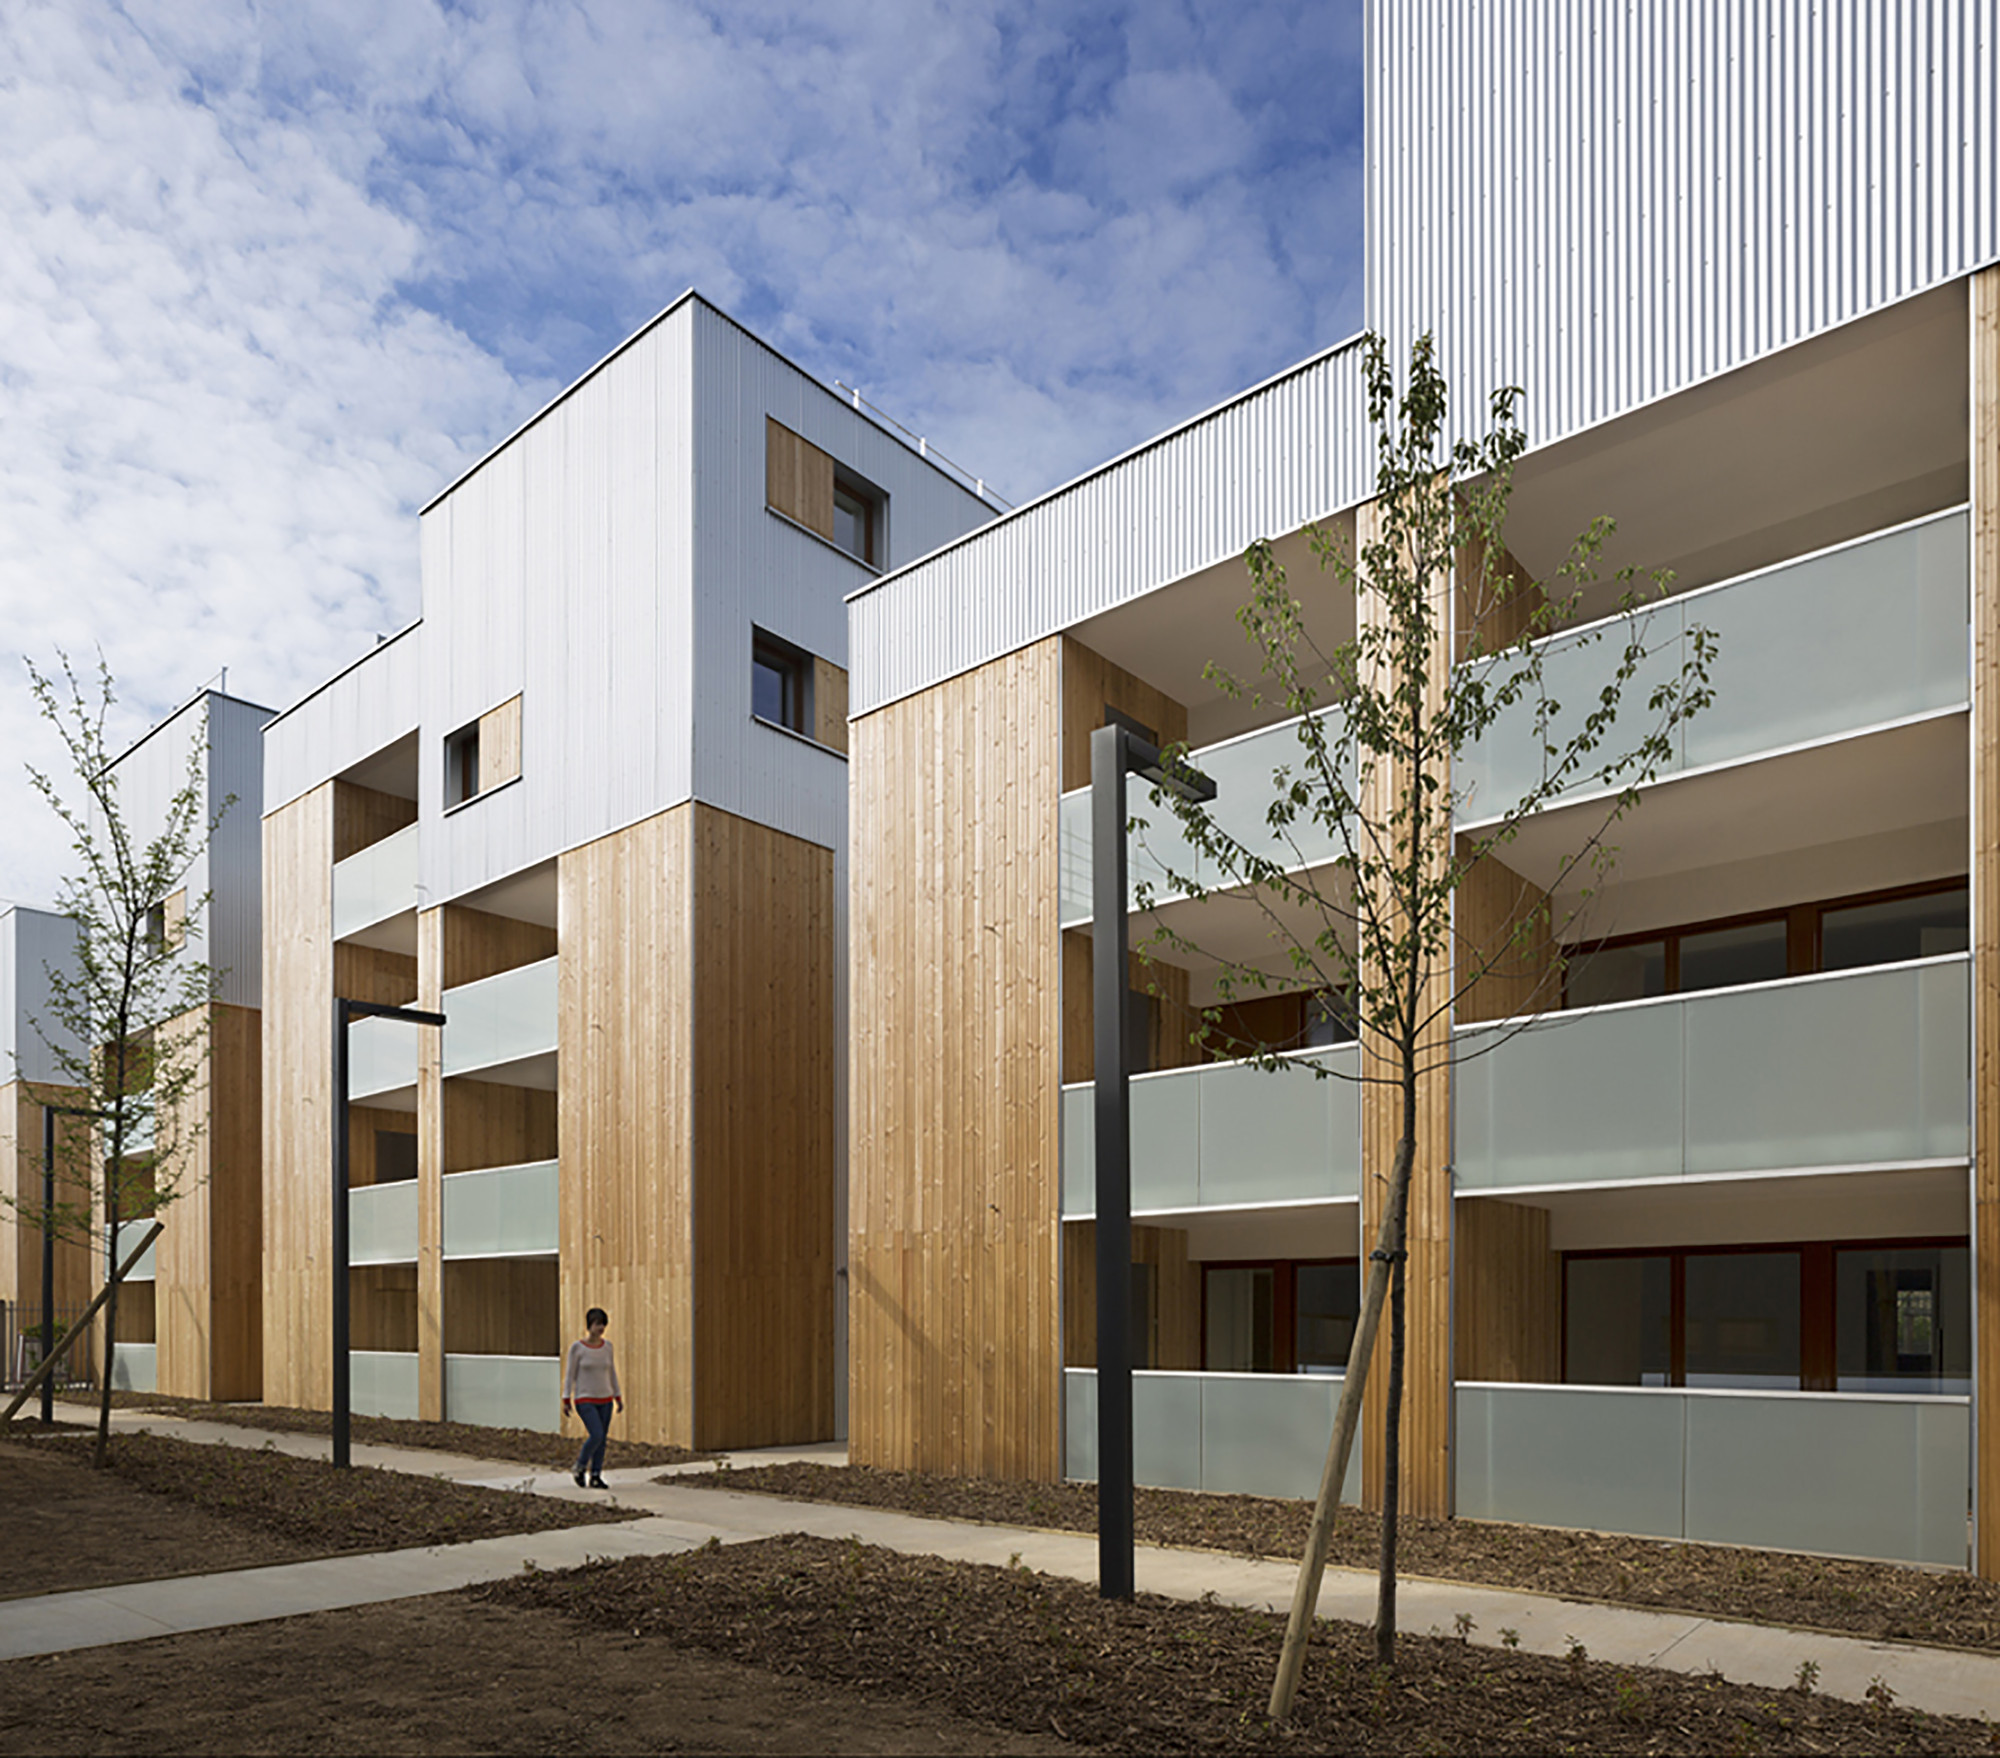 52 Social Housing Units in Nanterre / Colboc Franzen & Associés, © Cécile Septet